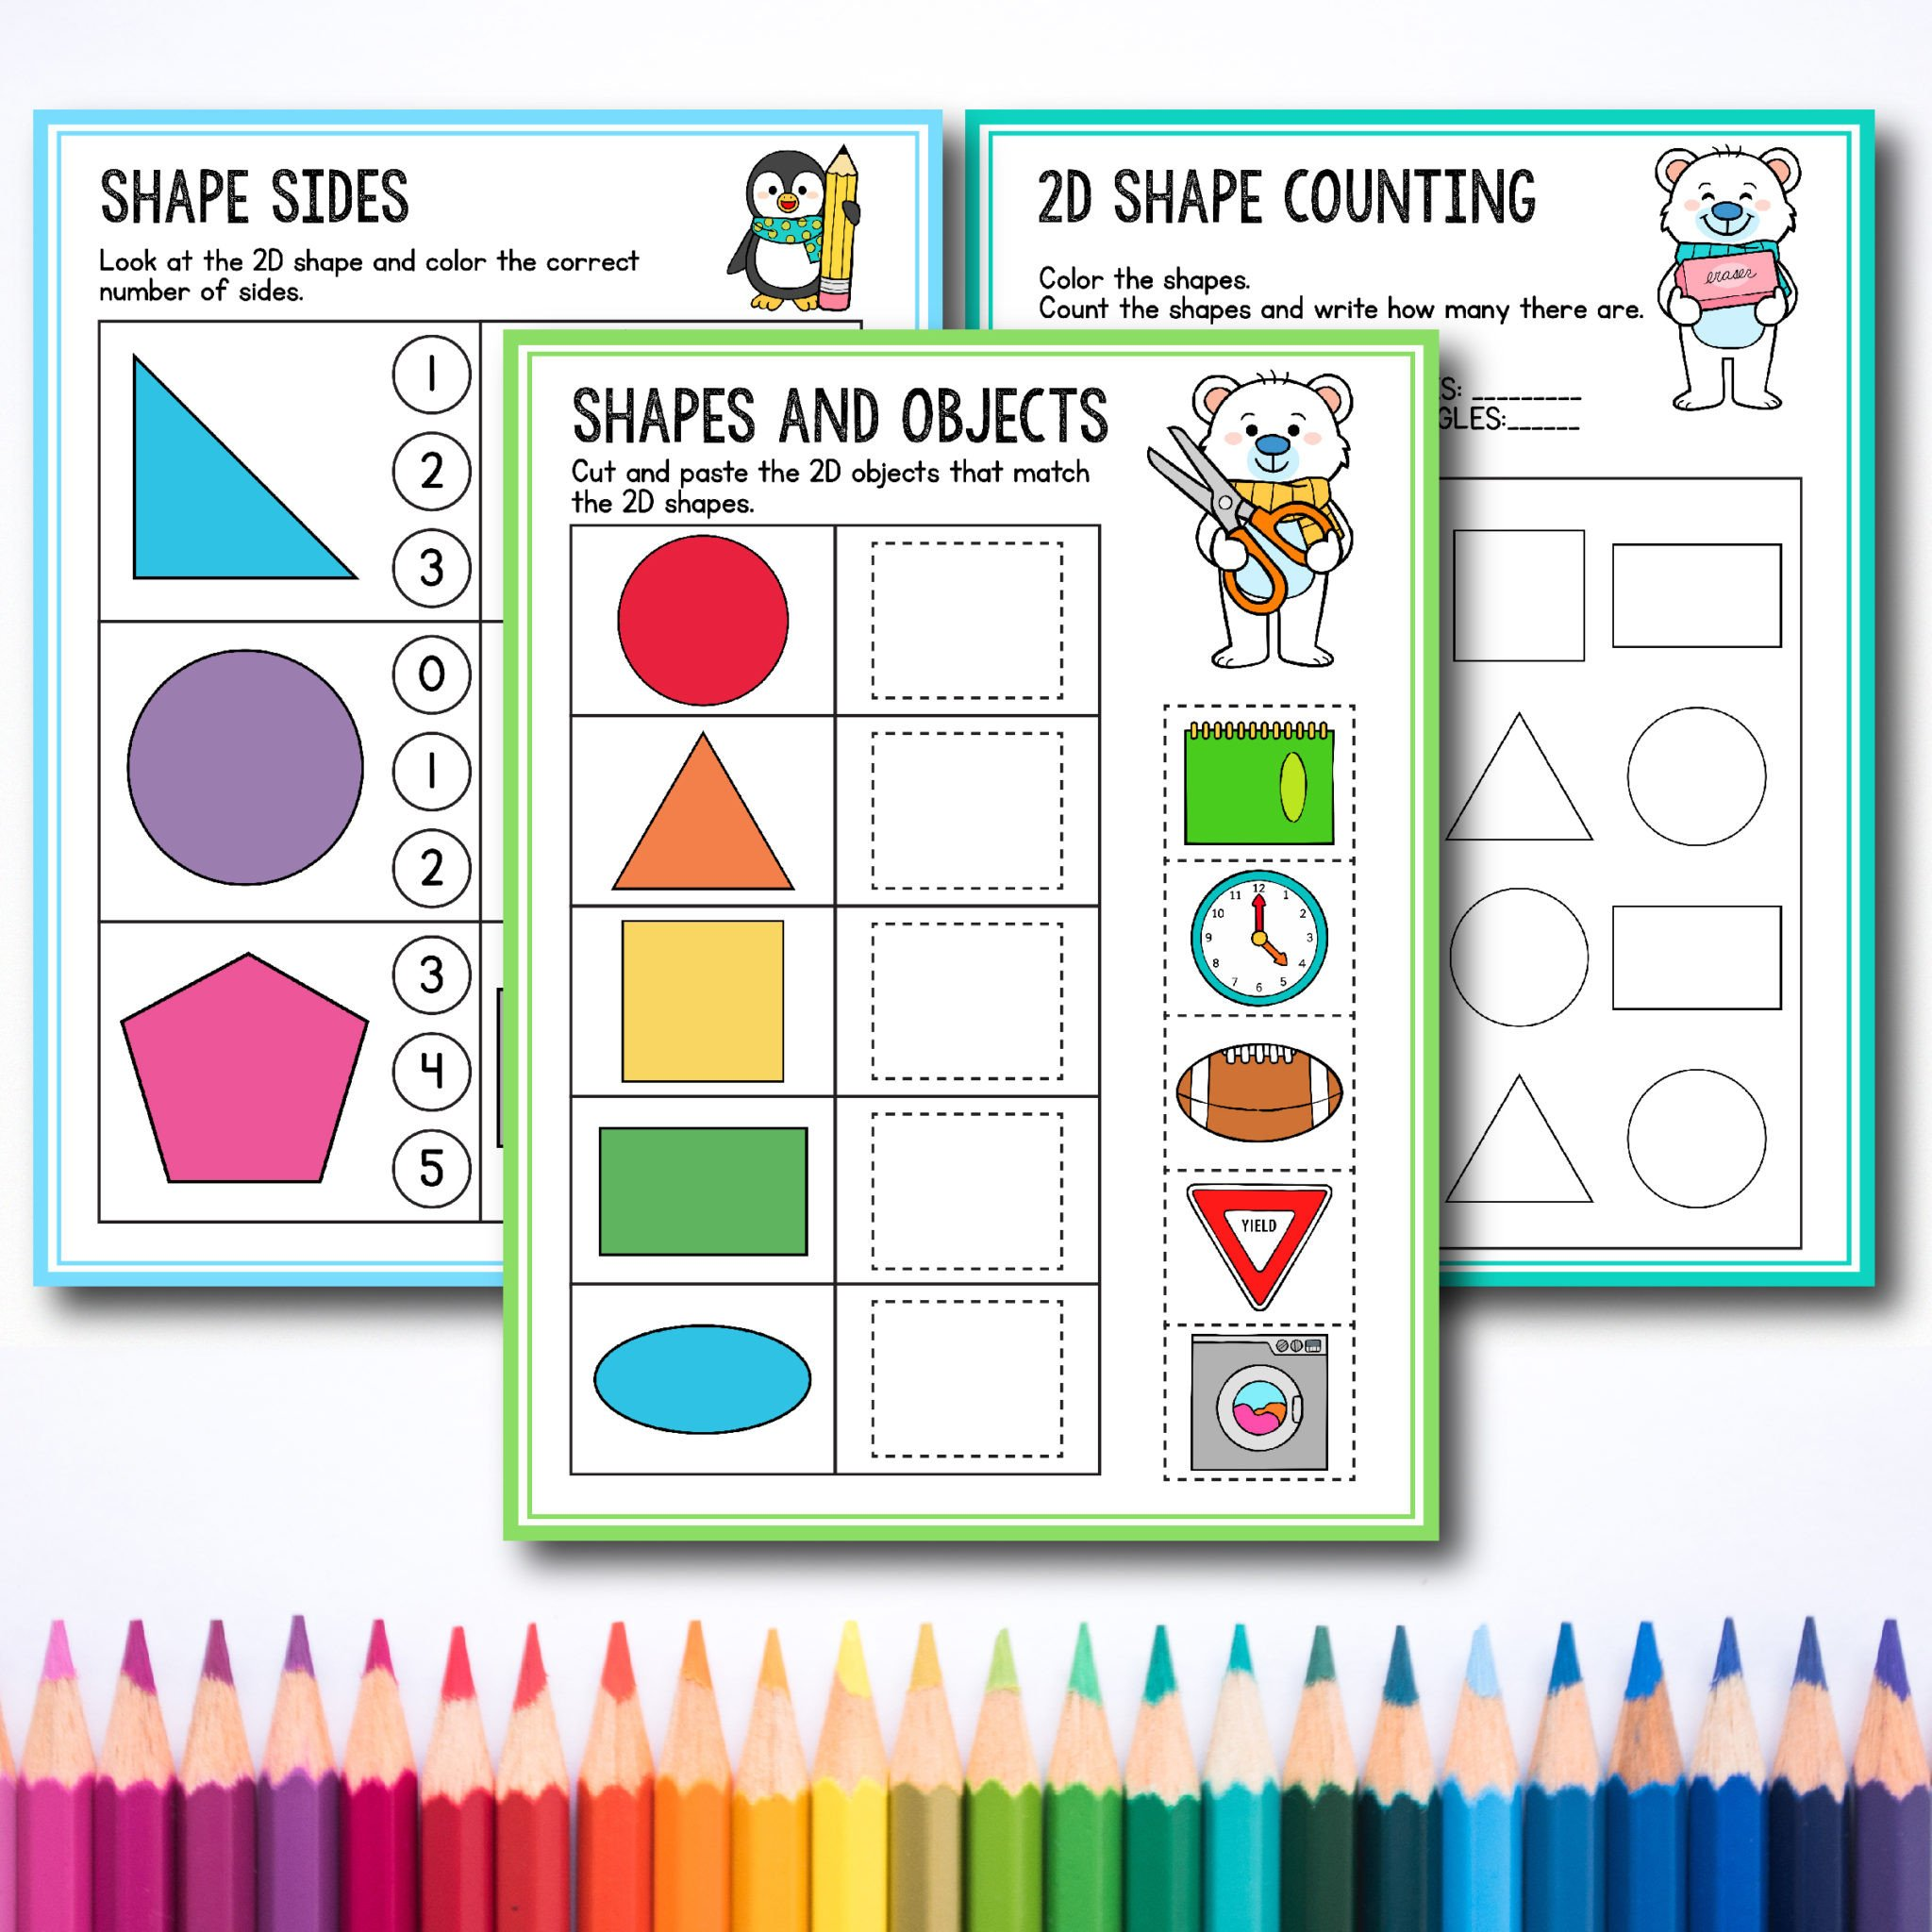 Kindergarten Shapes Worksheets Free Free Preschool & Kindergarten Shapes Worksheets for toddlers